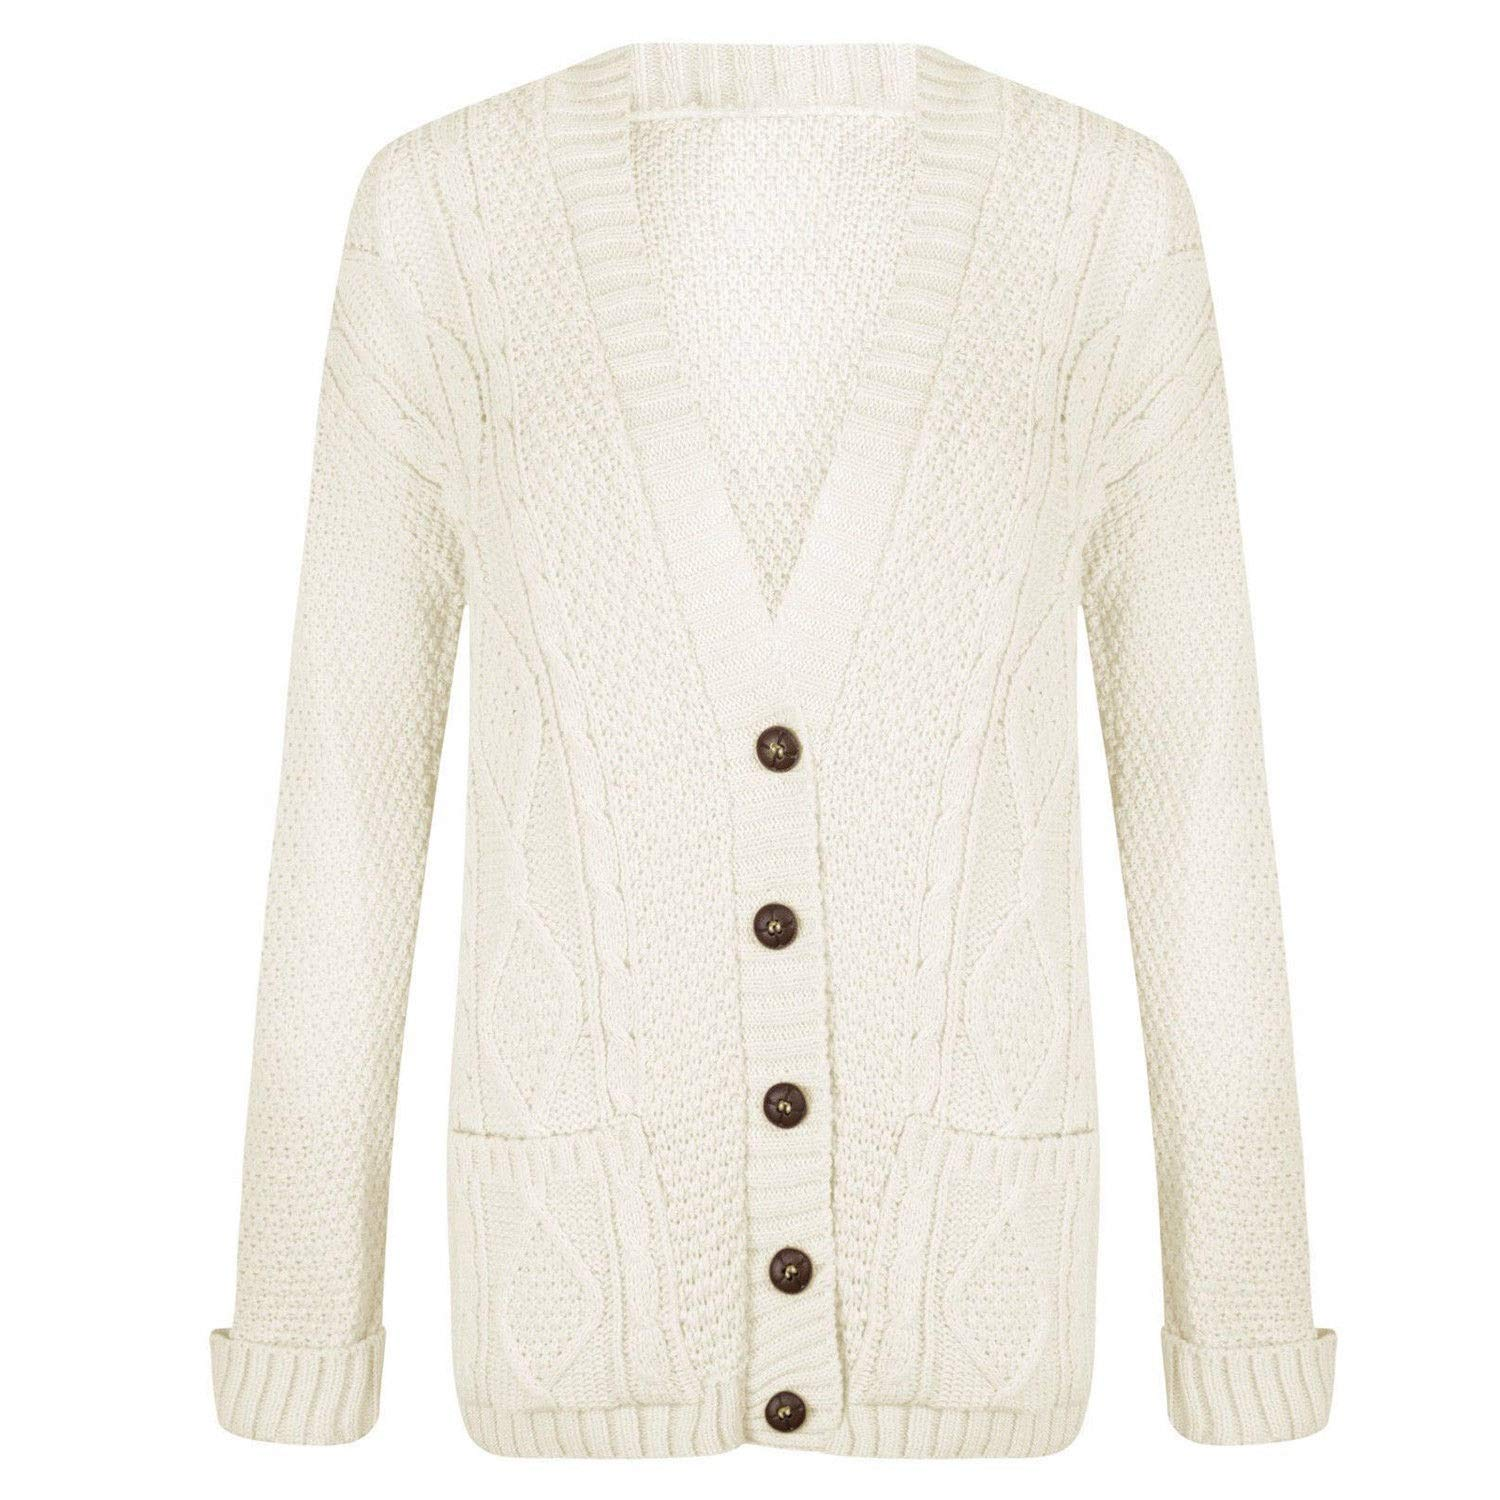 Top Fashion18 Womens Cable Knitted Button Cardigan Long Sleeve Ladies Boyfriend Top Sizes 8-22